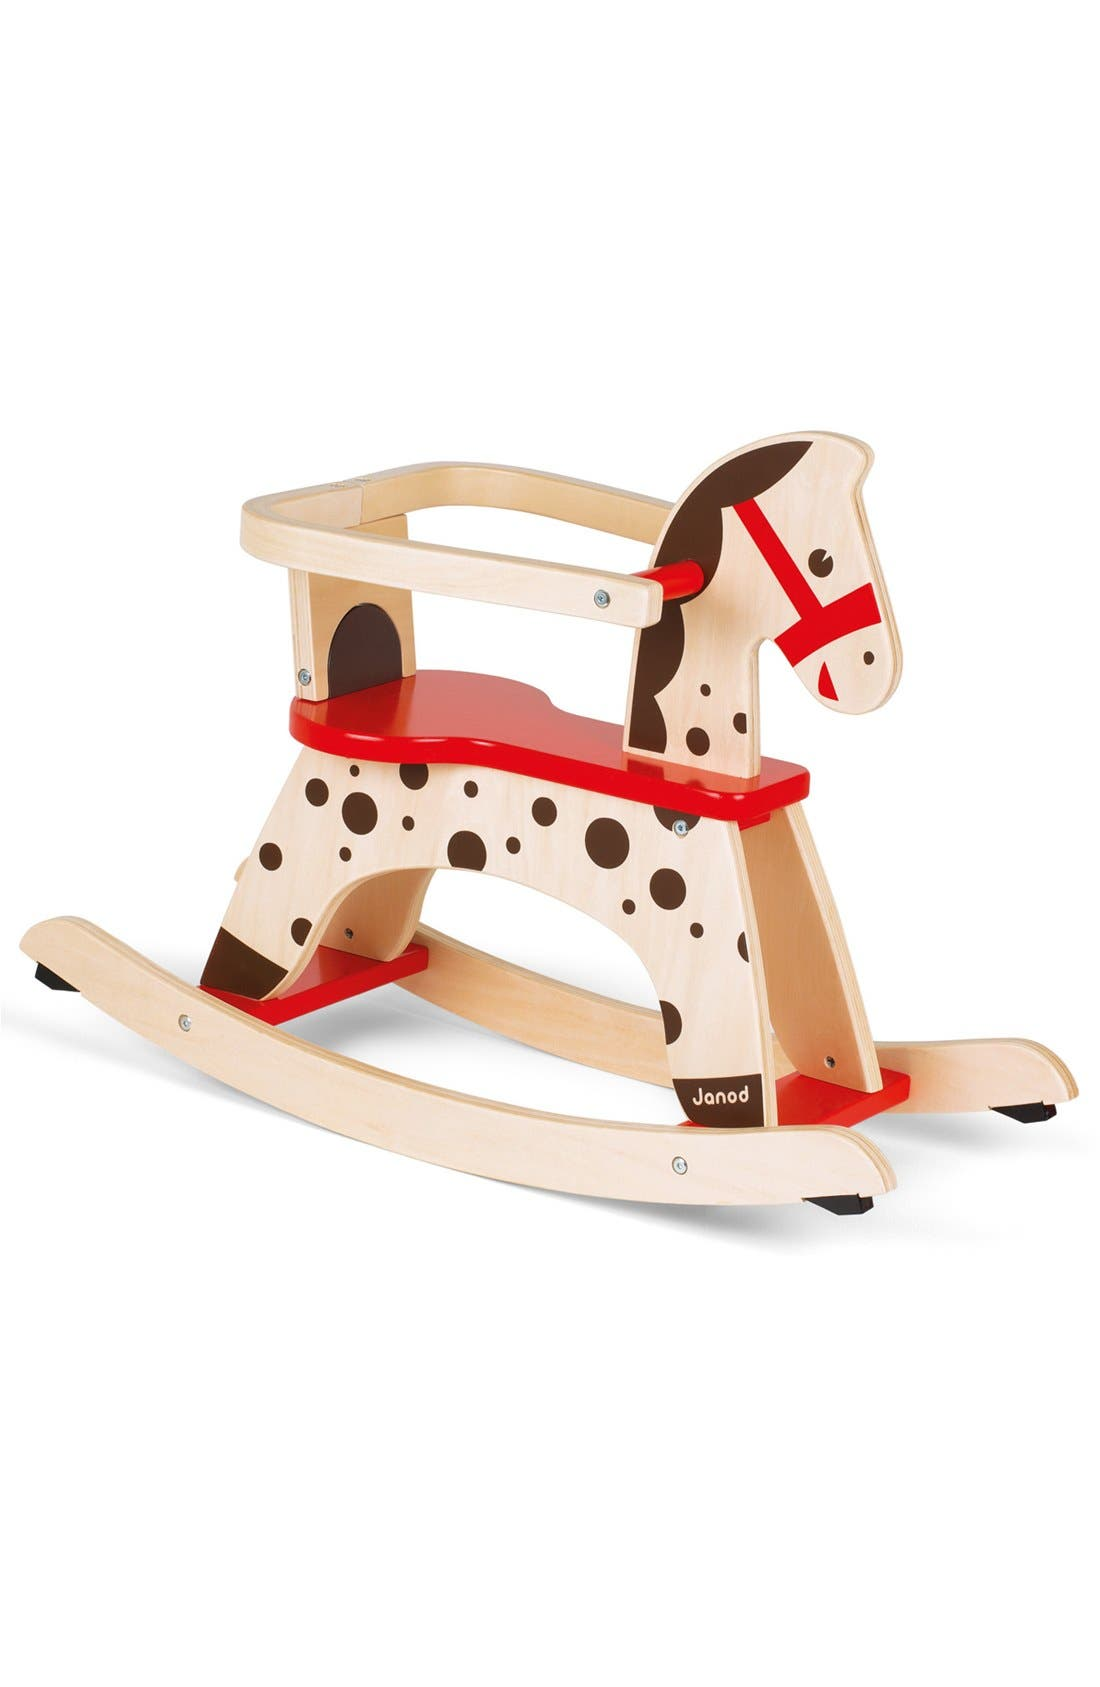 'Caramel' Wood Rocking Horse,                             Alternate thumbnail 2, color,                             RED